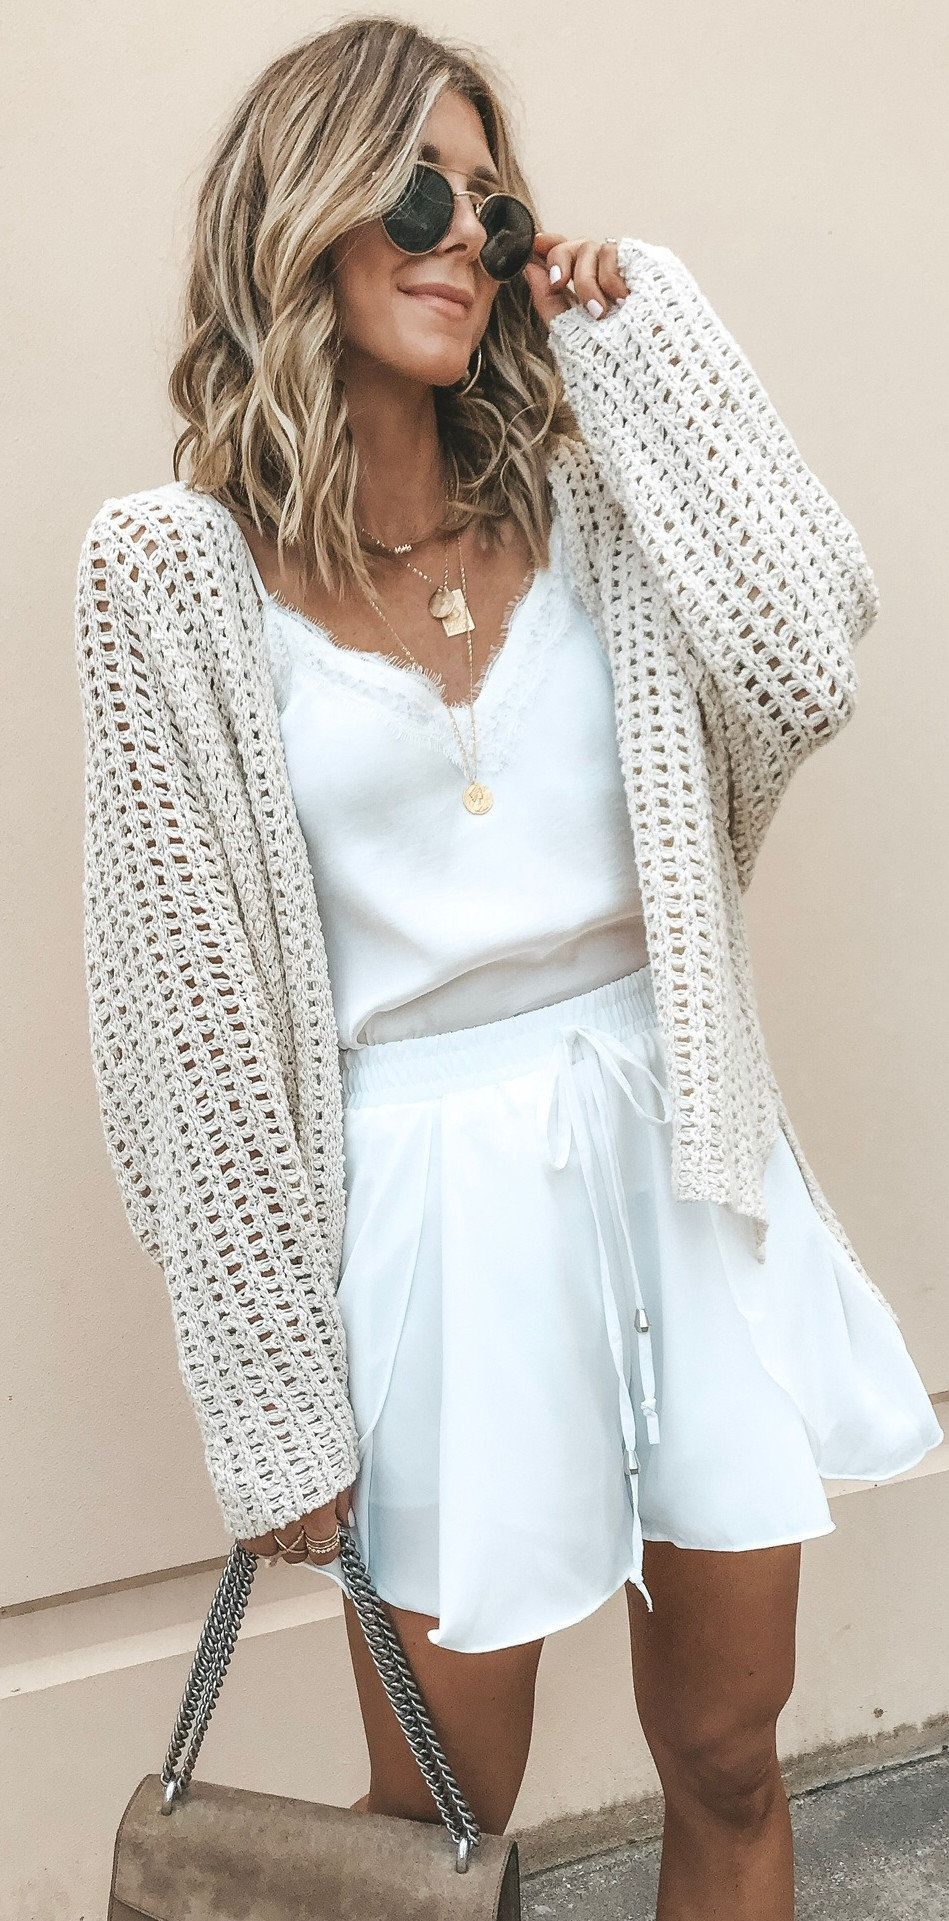 10 Beautiful Summer Outfits To Try Now White Cardigan Youroutfitideas Com Outfit Fashion Style Fashion Fashion Outfits Cardigan Fashion [ 1921 x 949 Pixel ]